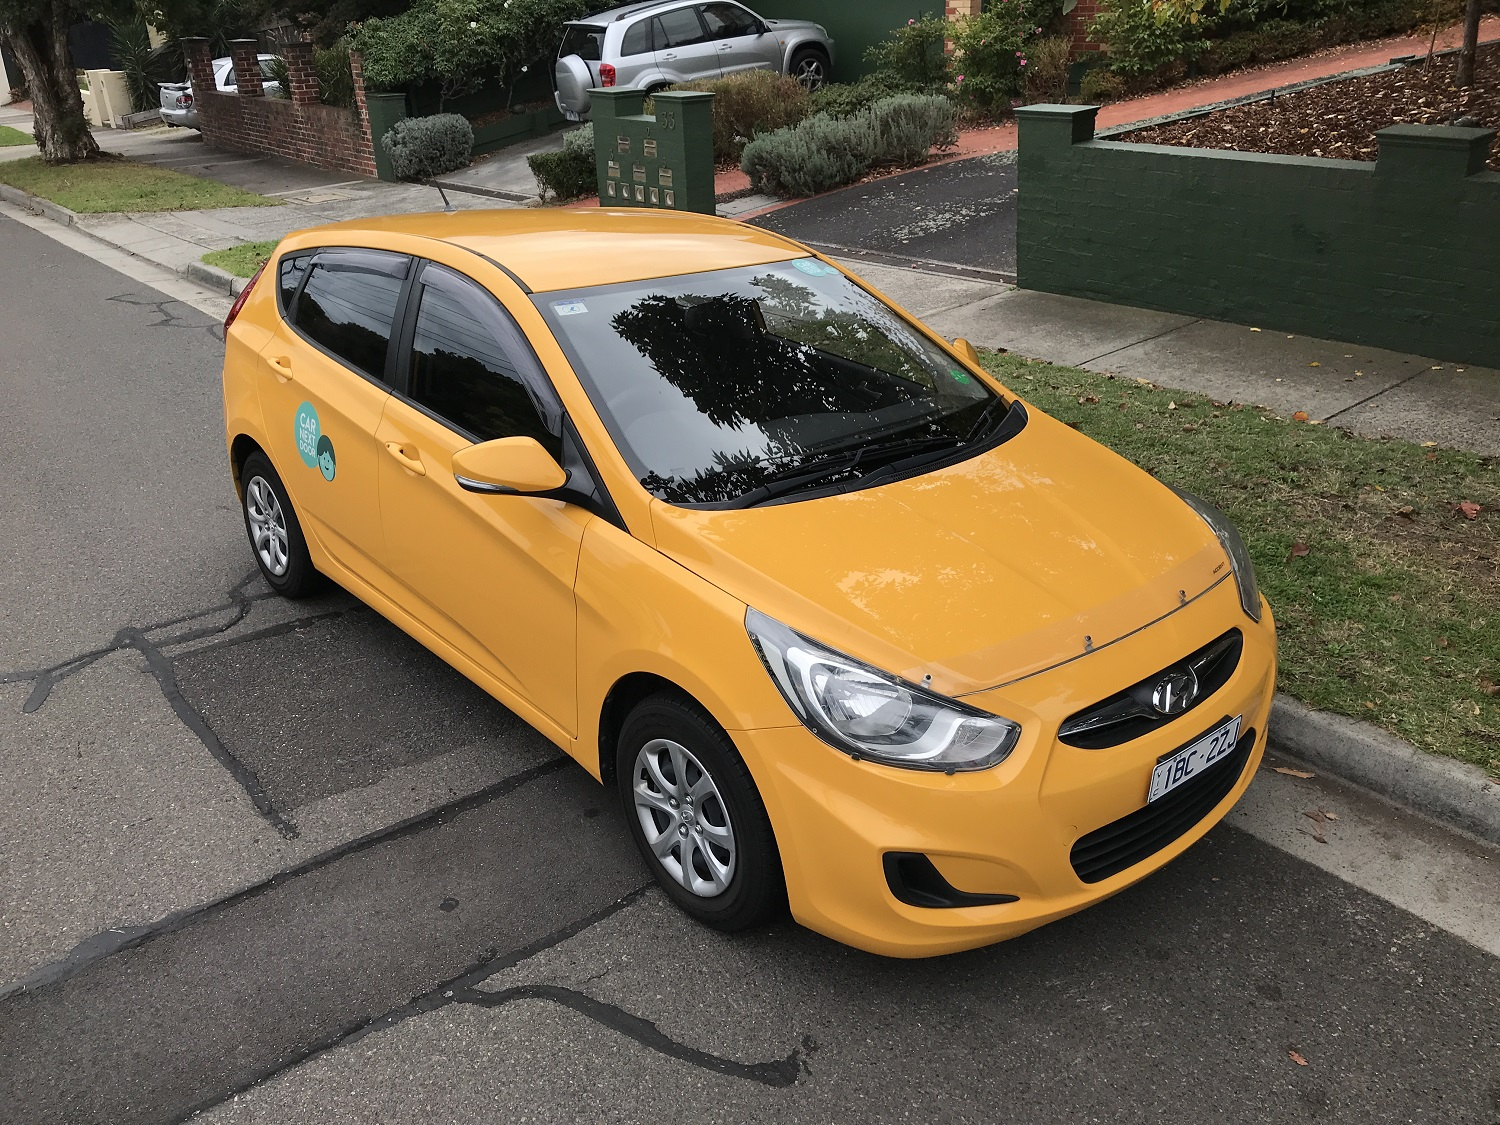 Picture of Adeline's 2014 Hyundai Accent